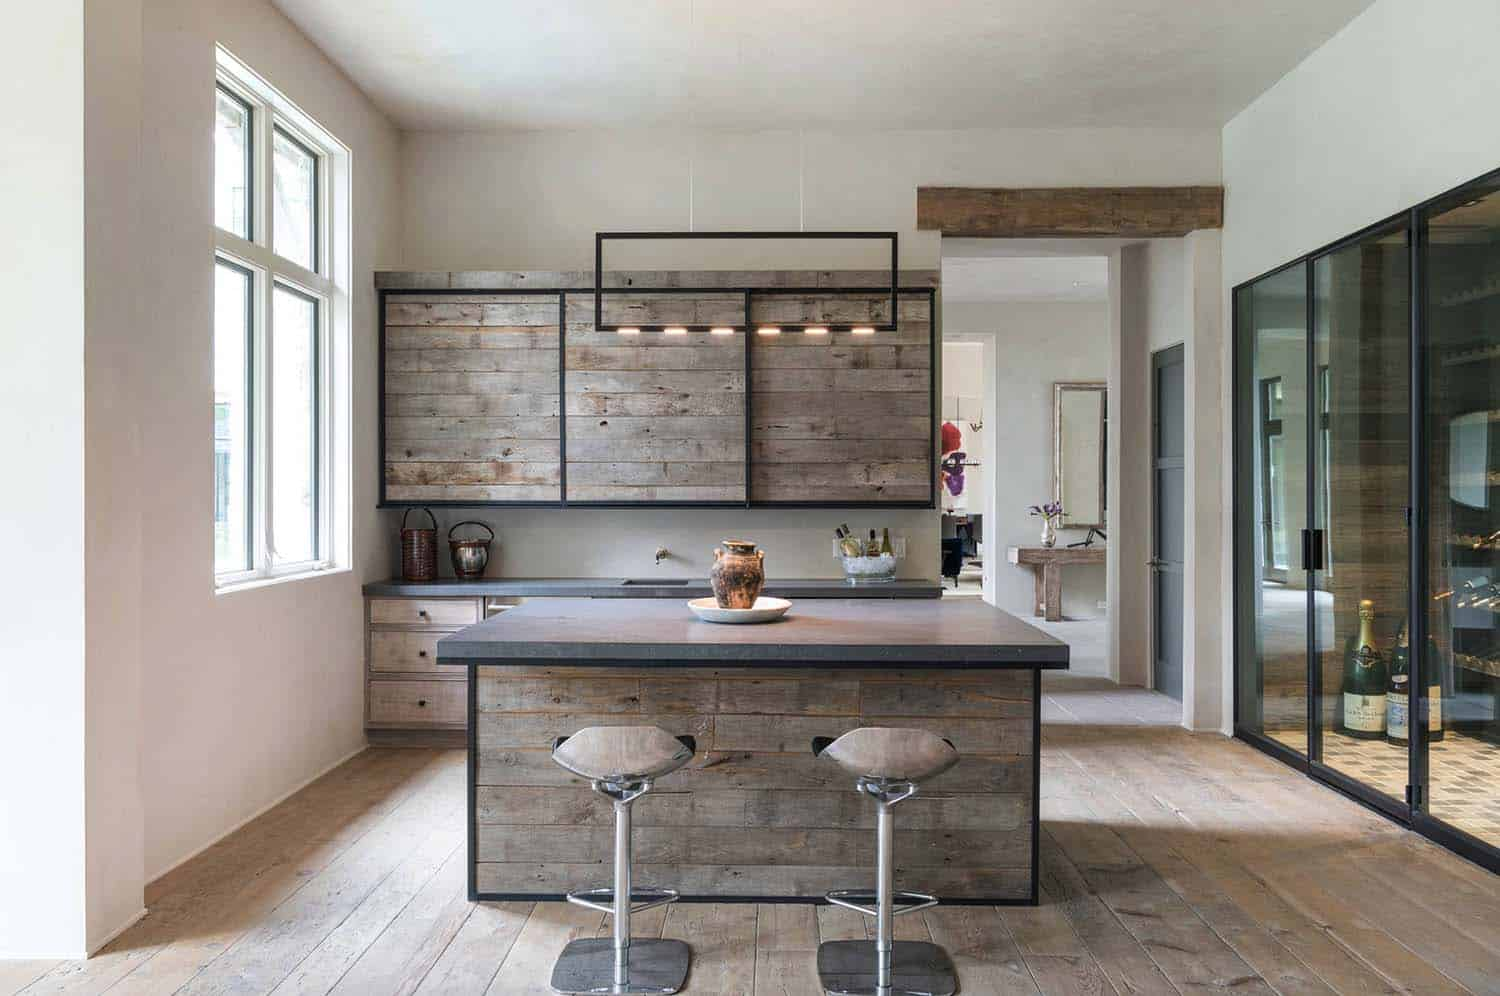 French Normandy Chateau-Bankston May Associates-12-1 Kindesign